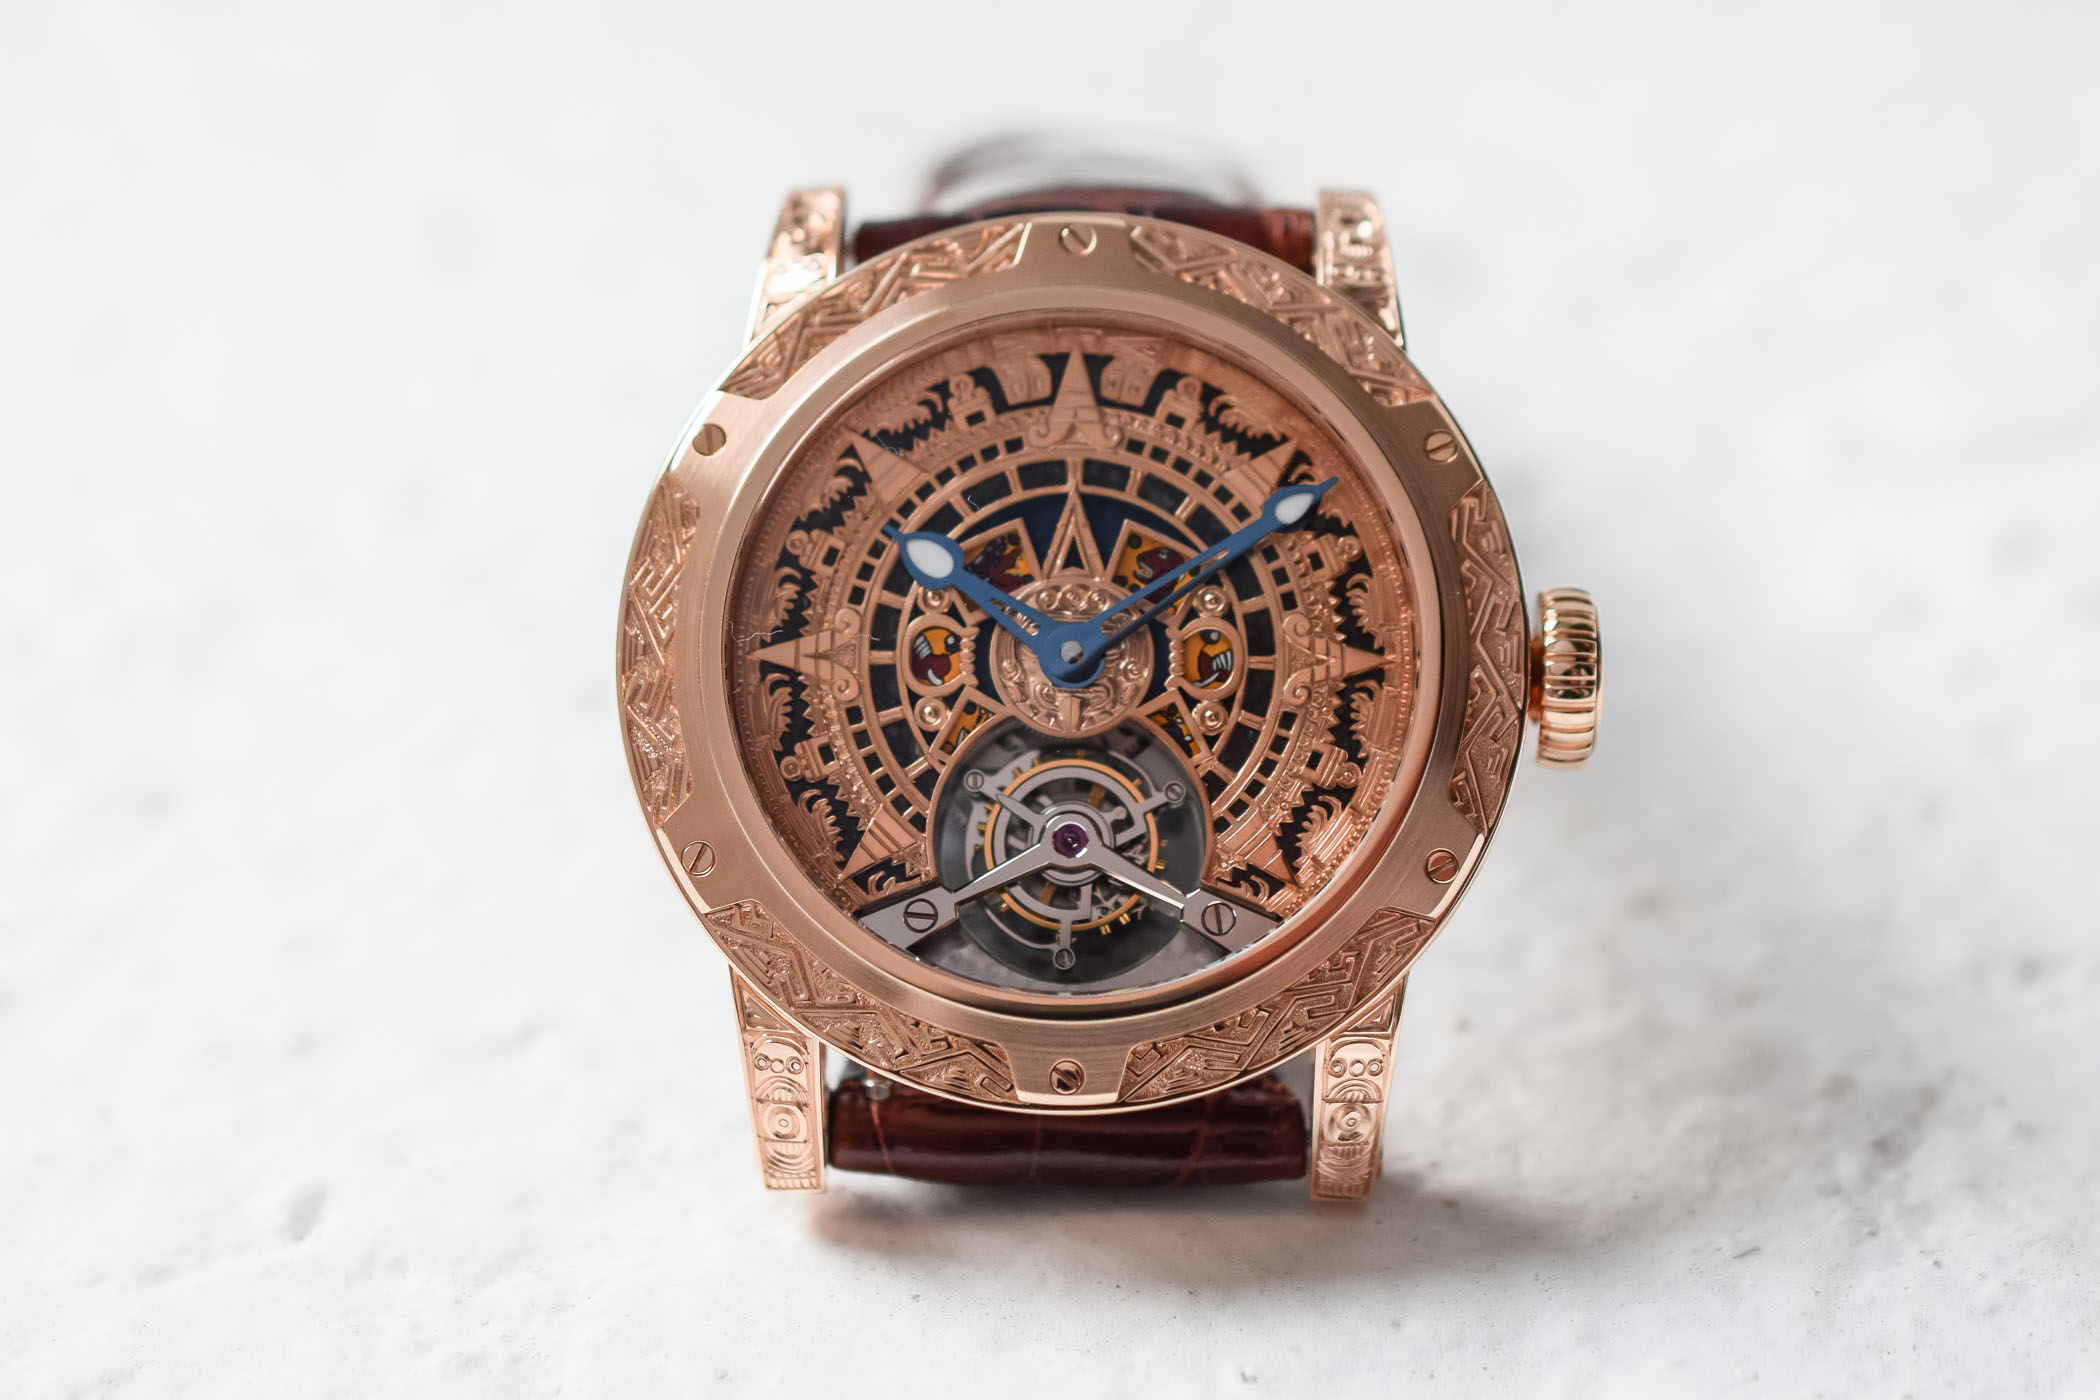 Louis Moinet Only Mexico - SIAR 2019